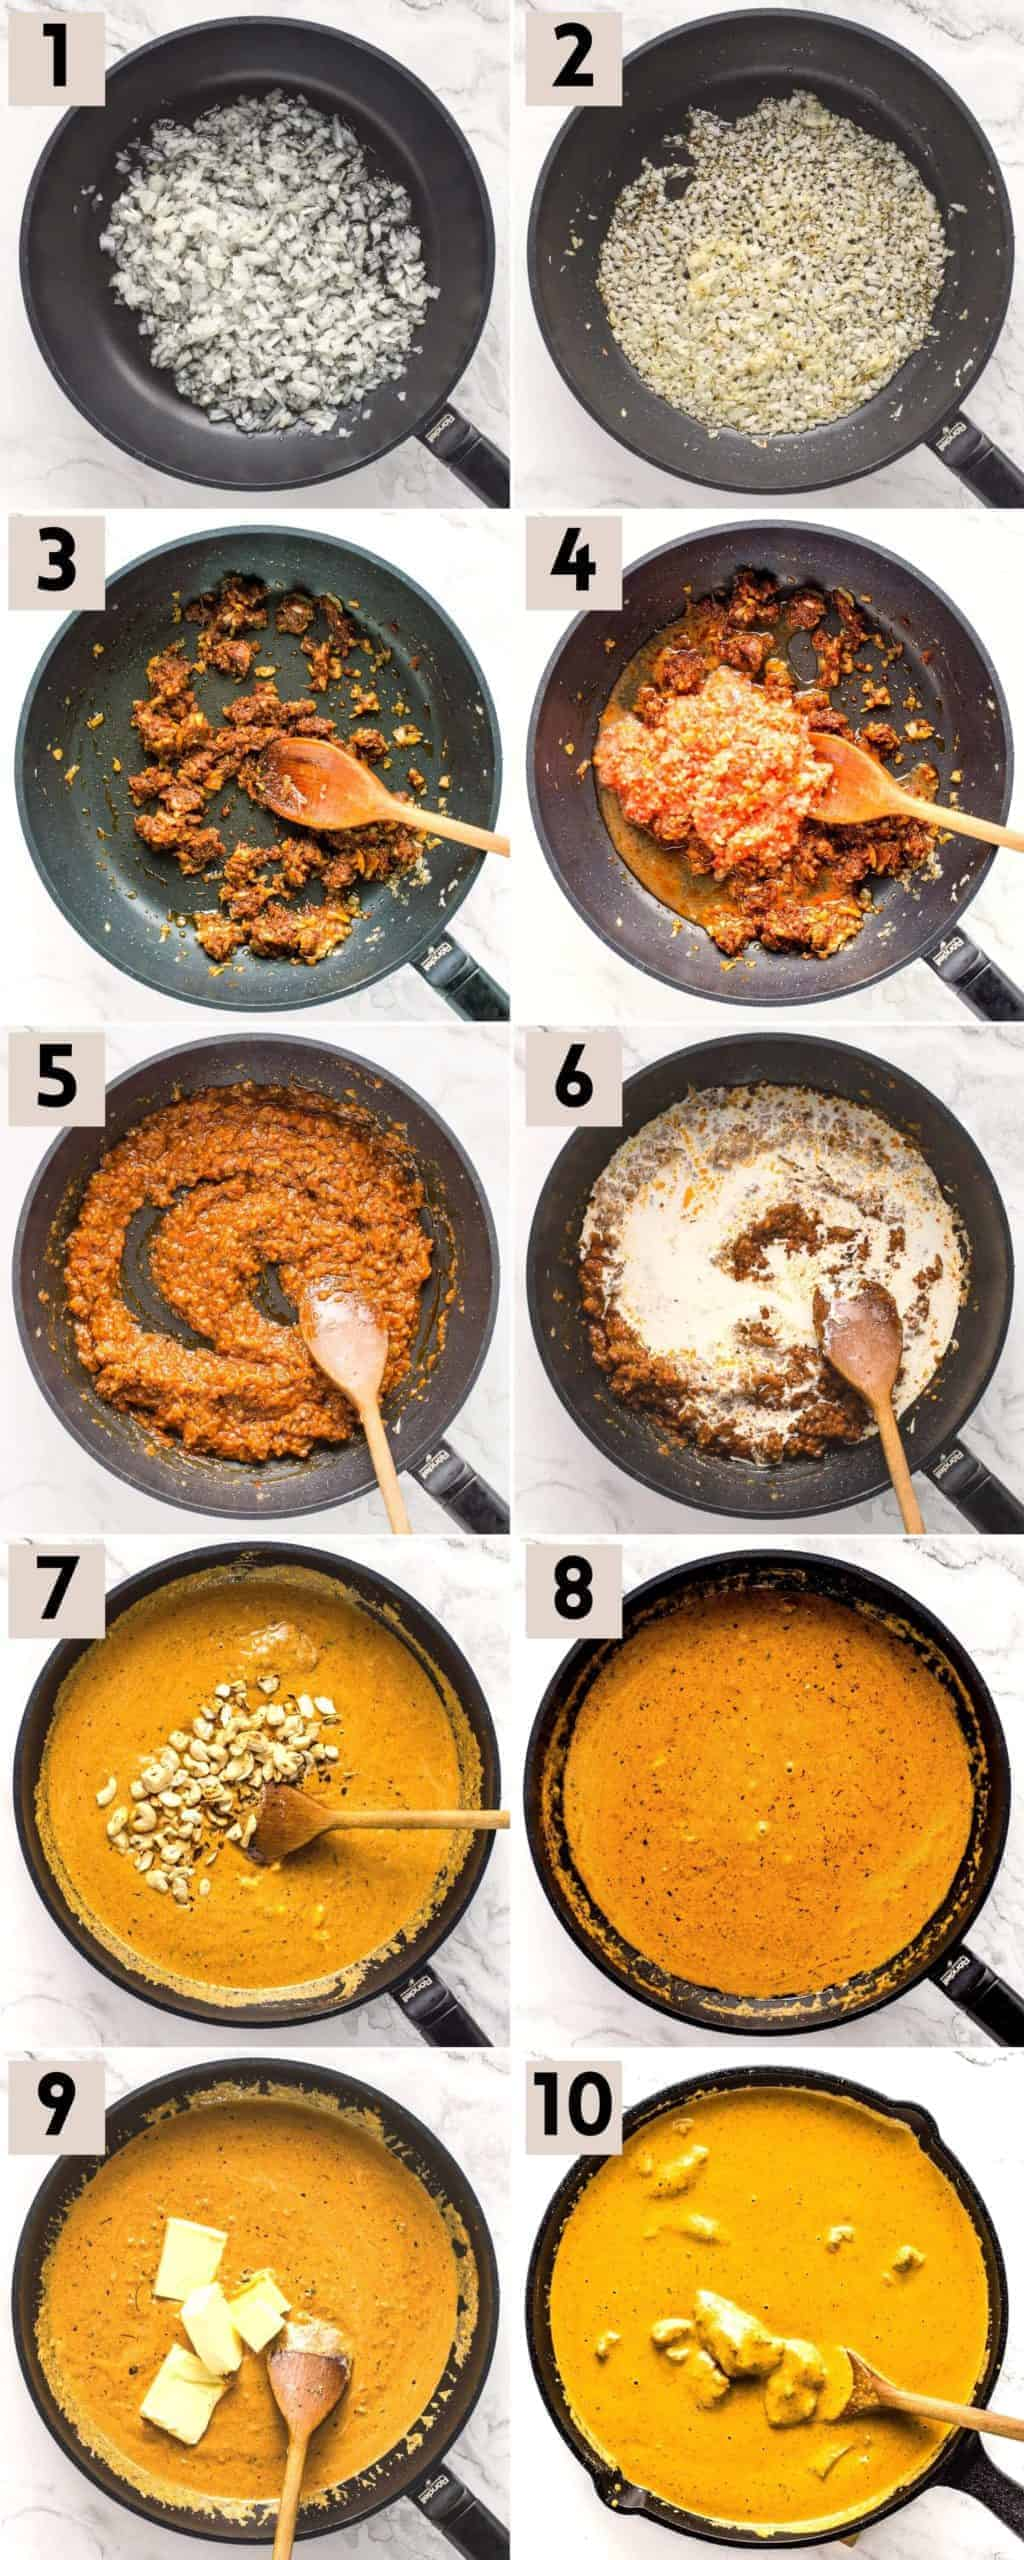 10 steps to cook butter chicken